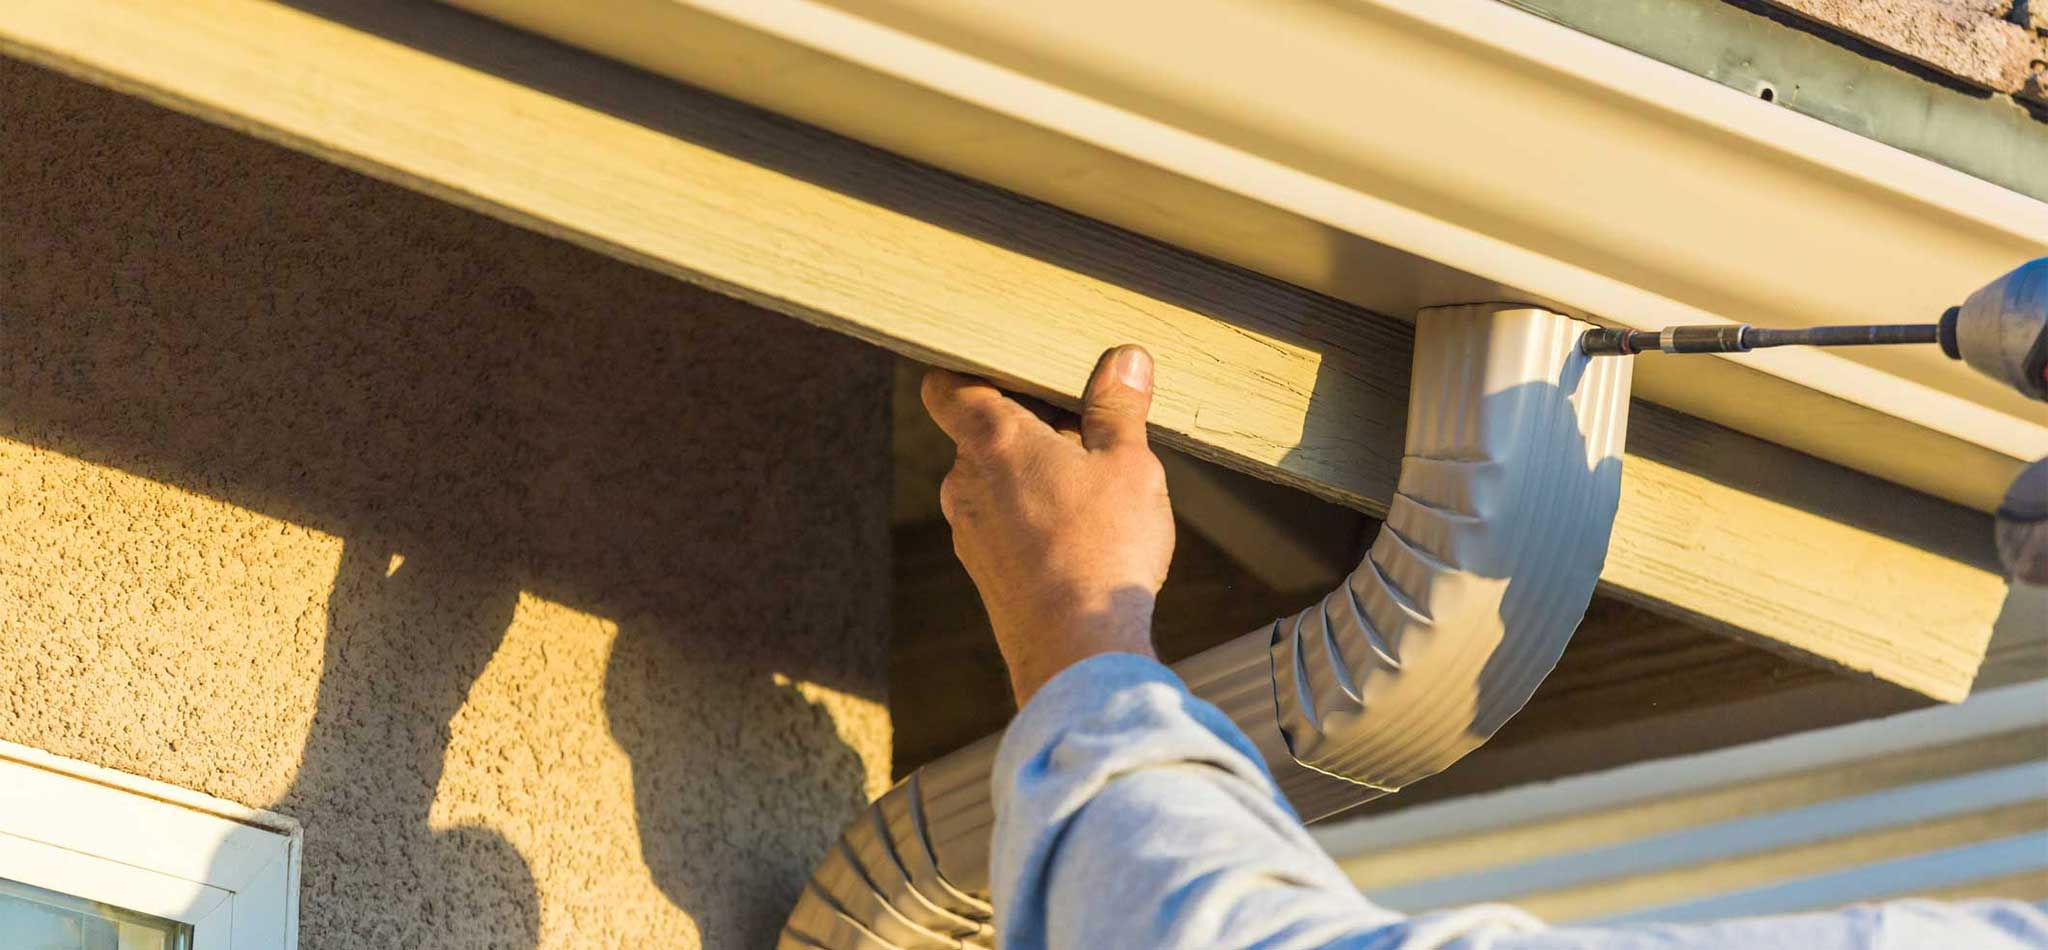 Dedicated Roofing & Exteriors - Professional Roofing Calgary Roof Repair Roof Replacement Eavestrough Services